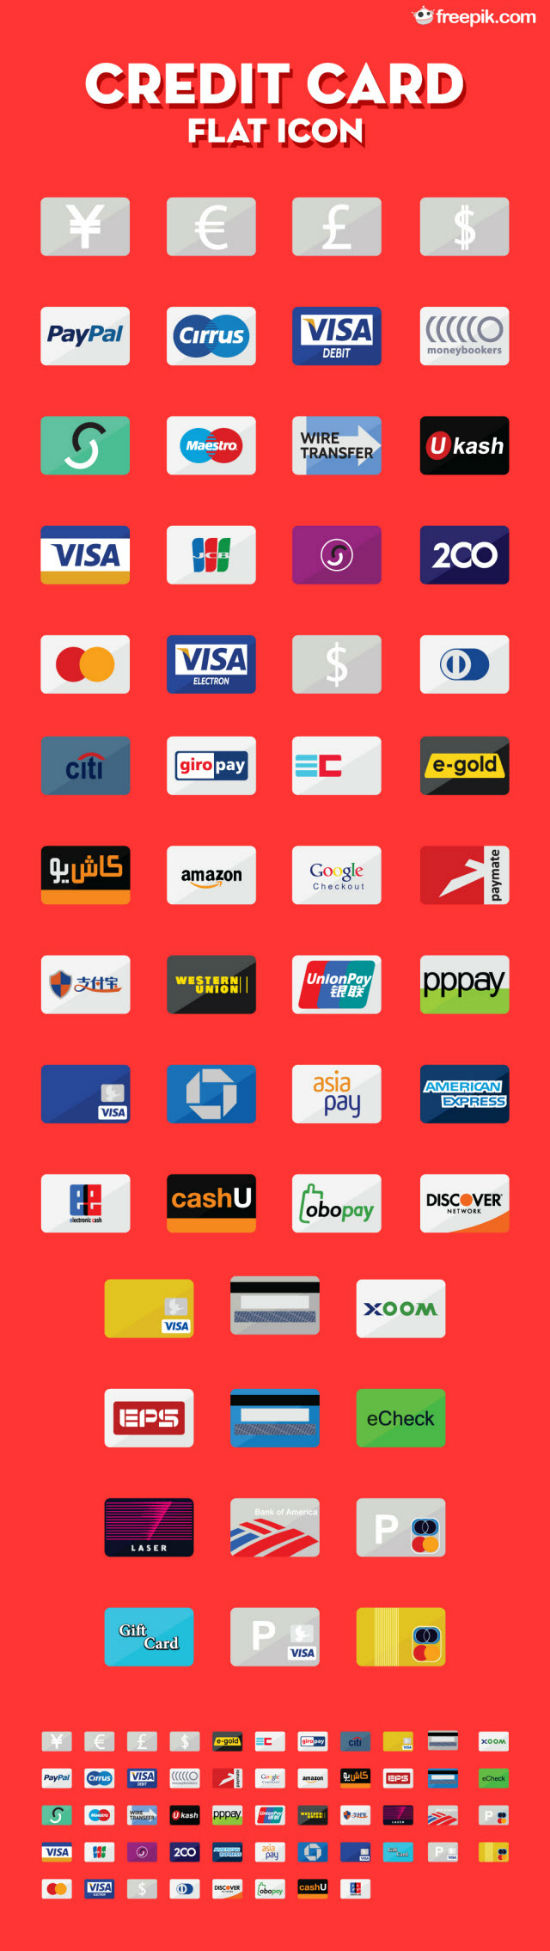 credit-cards-overview